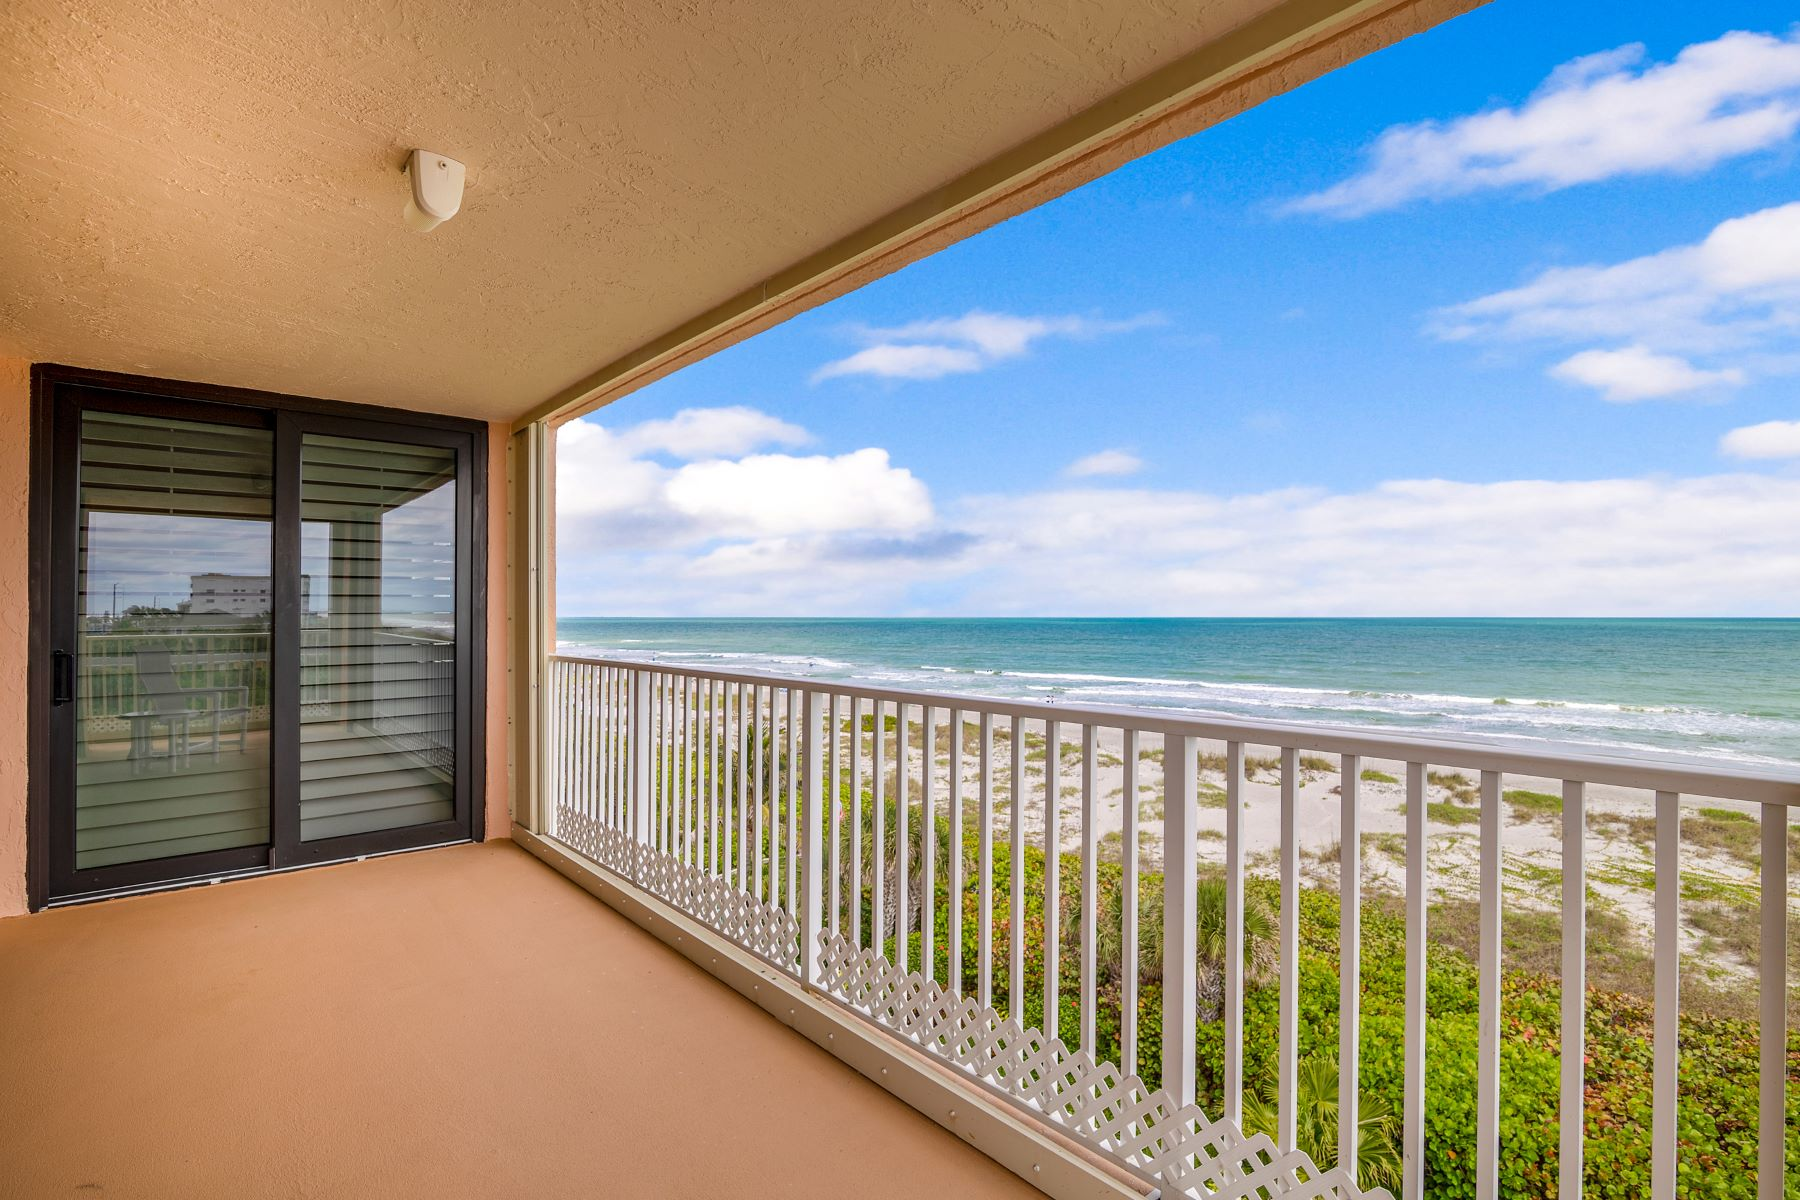 Additional photo for property listing at Coral Sands Condo 1527 S. Atlantic Avenue #502 Cocoa Beach, Florida 32931 United States